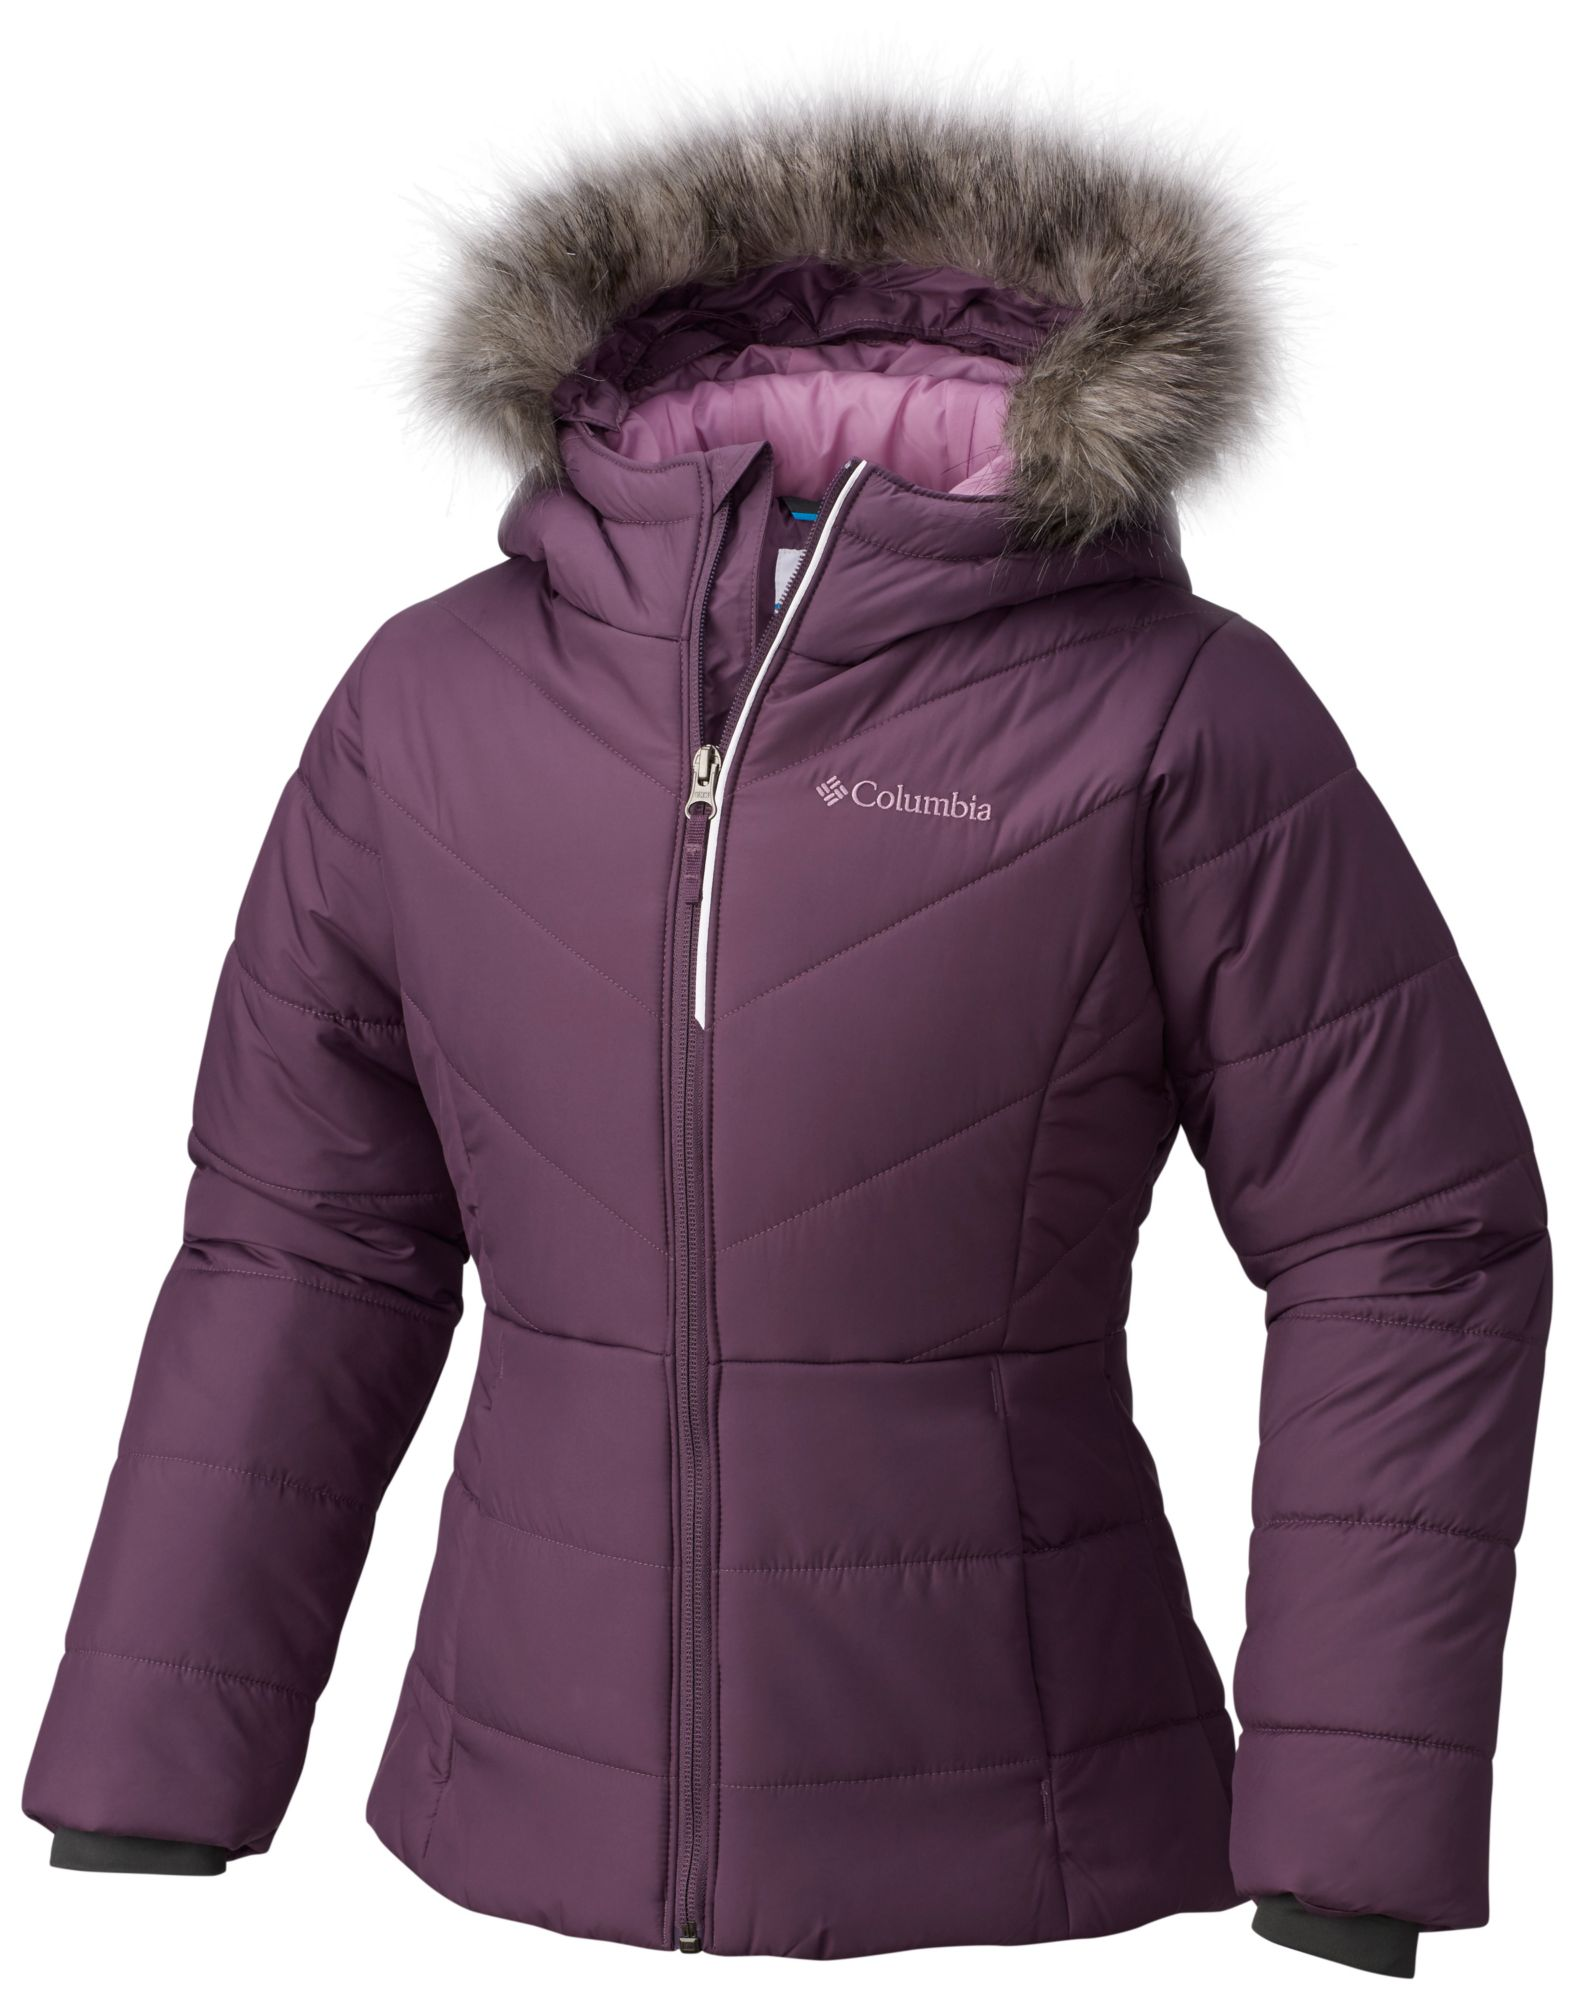 Girls' Jackets | Sporting Goods